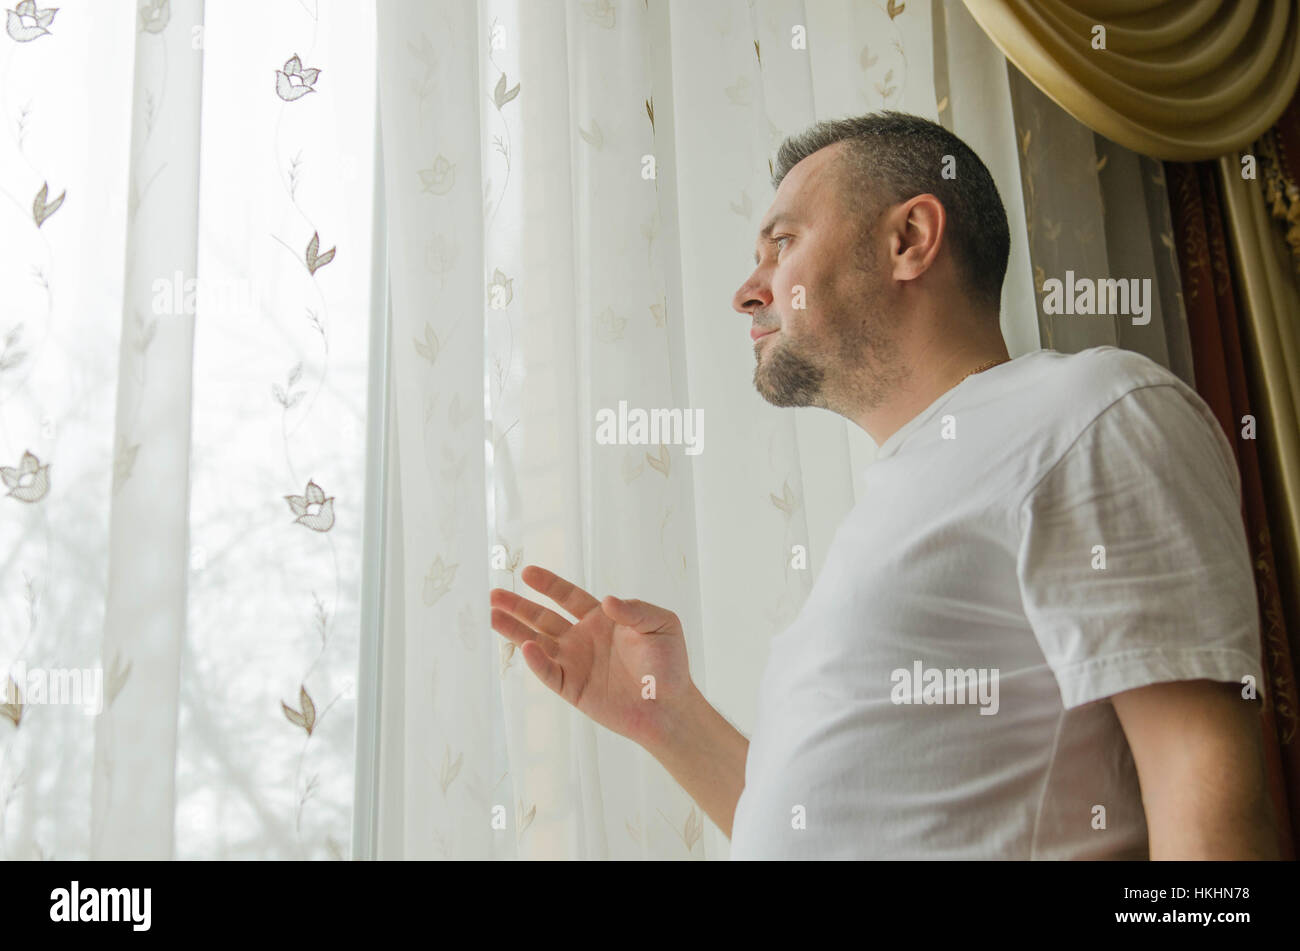 young man looking through a window blind - Stock Image